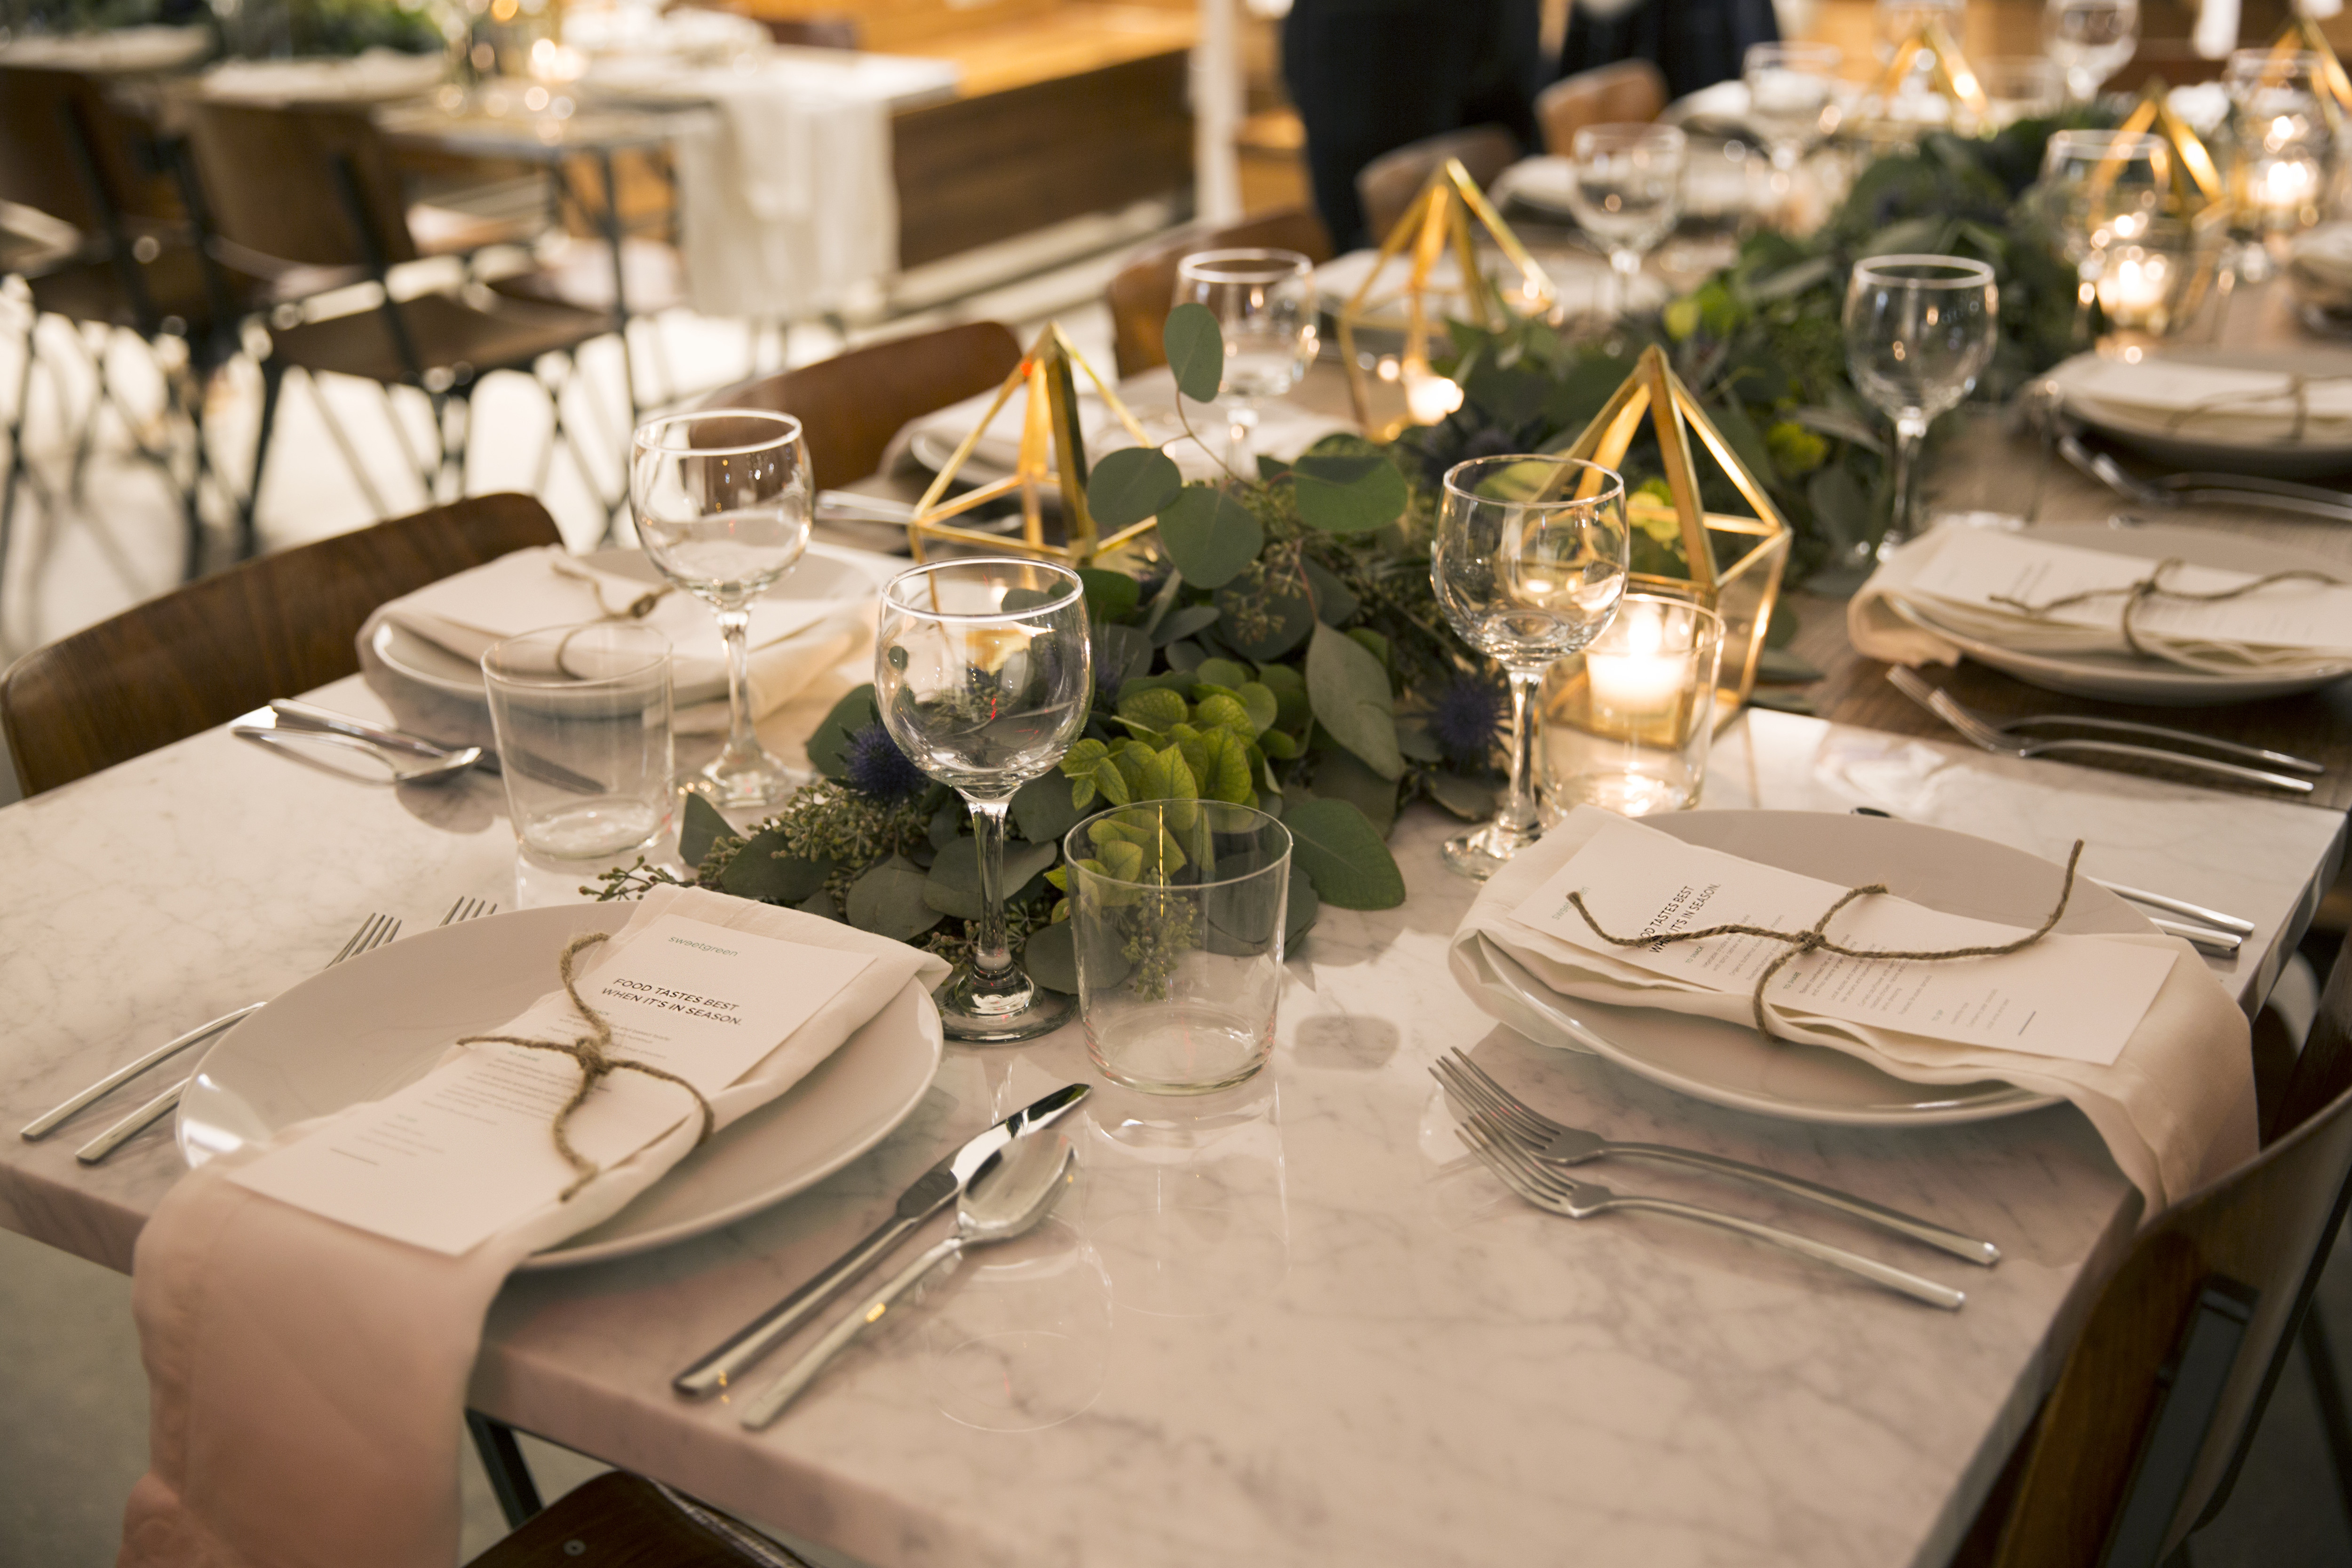 Modern restaurant table setting - How To Host A Modern Rustic Dinner Party